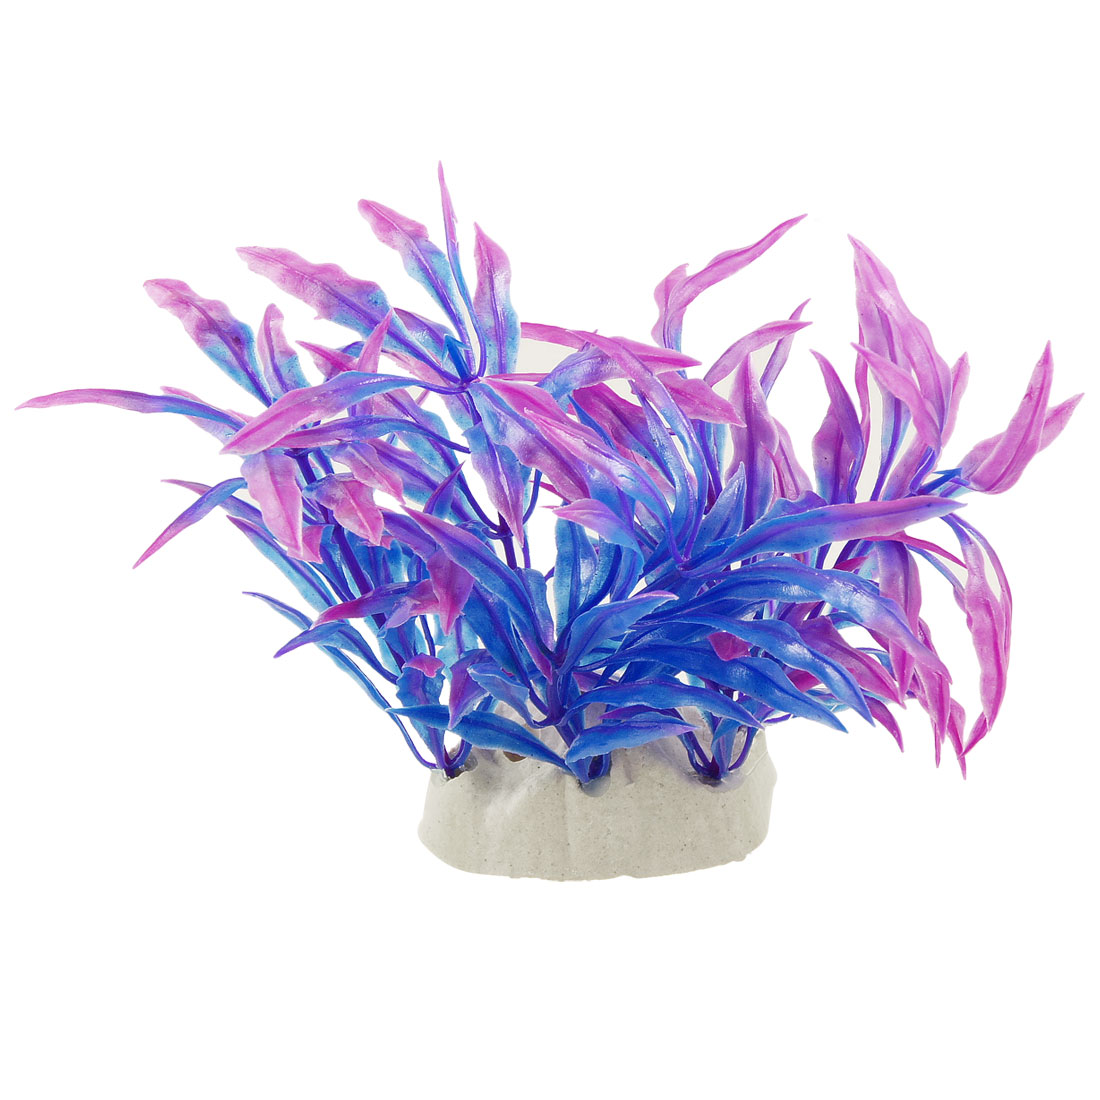 "Purple Blue Narrow Leaves 4.3"" High Plastic Plant Decoration for Aquarium"